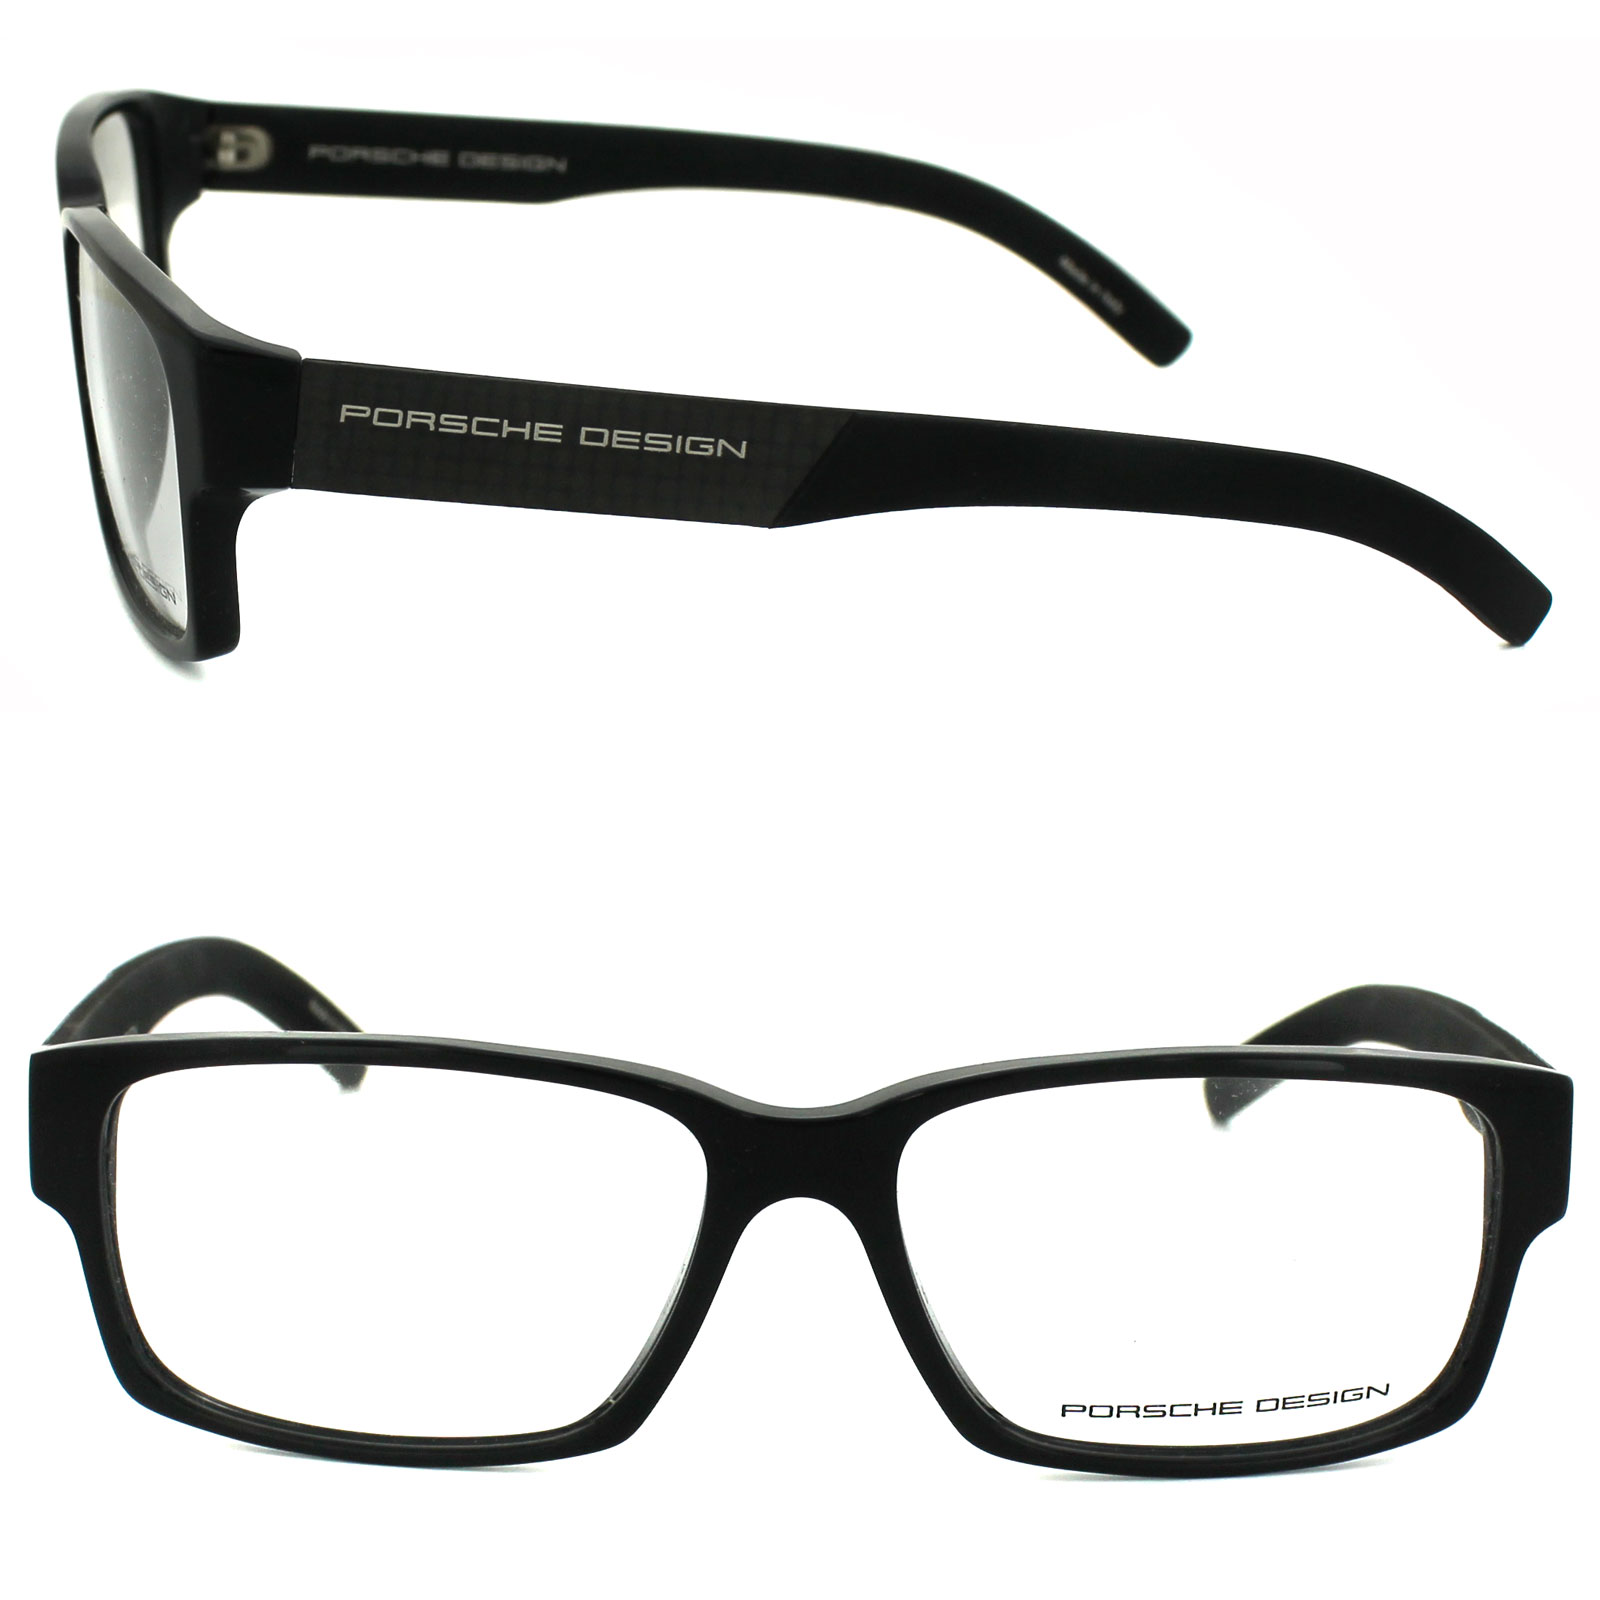 Porsche Design Glasses Frame : Cheap Porsche Design P8241 Glasses Frames - Discounted ...